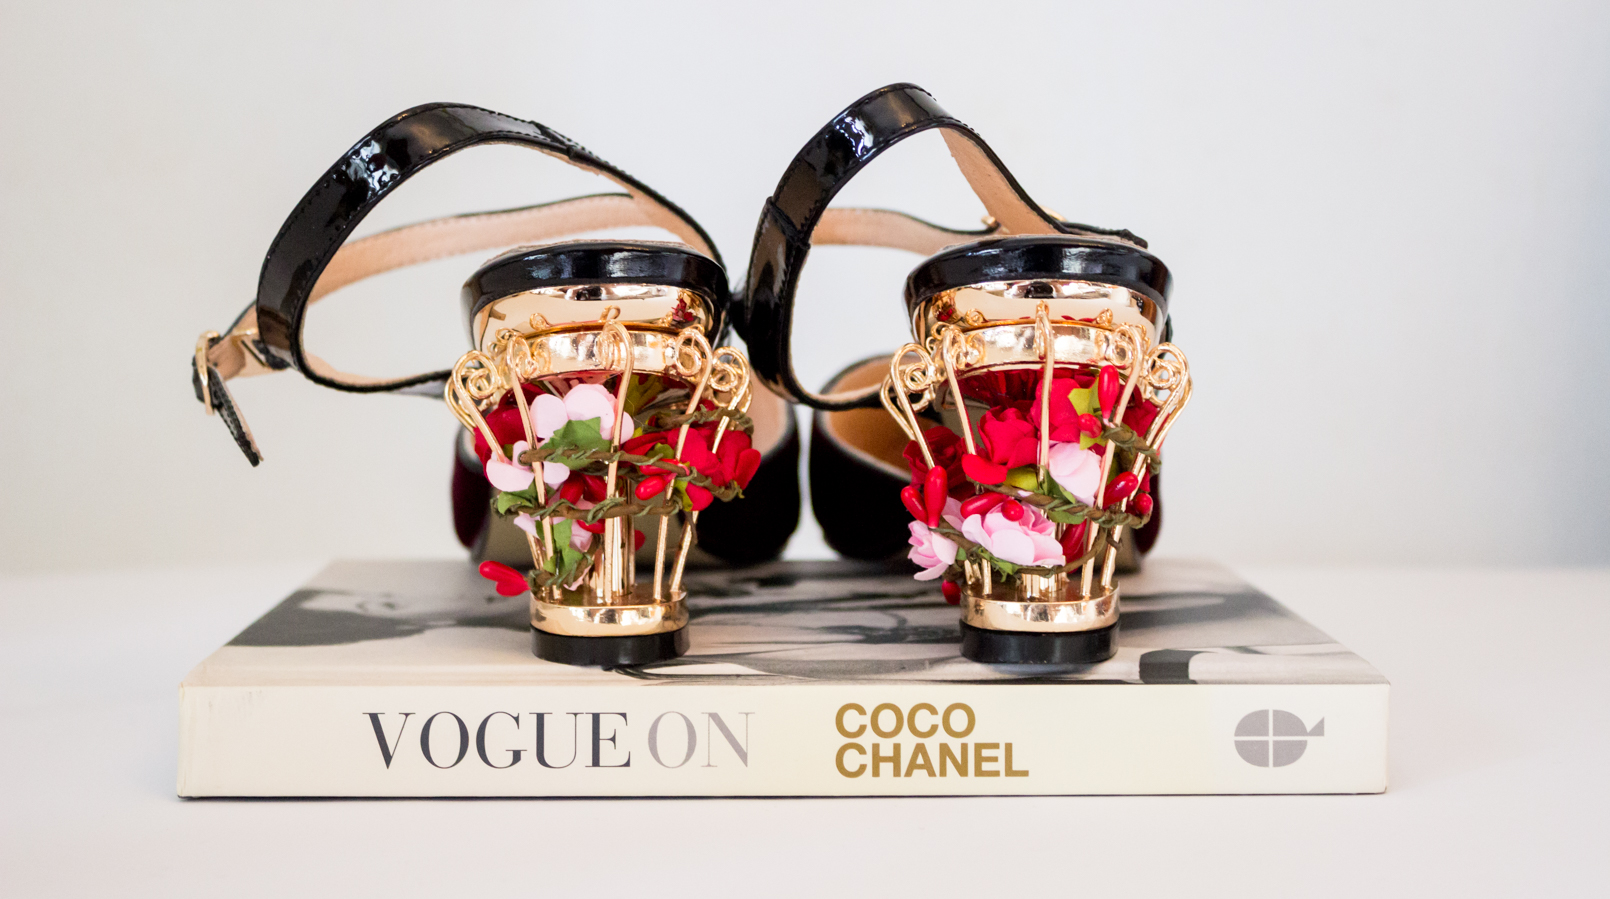 Le Fashionaire My Zaful shoes blogger catarine martins fashion inspiration shoes color wine velvet golden heels flowers ornate red zaful book vogue on coco chanel 5229F EN